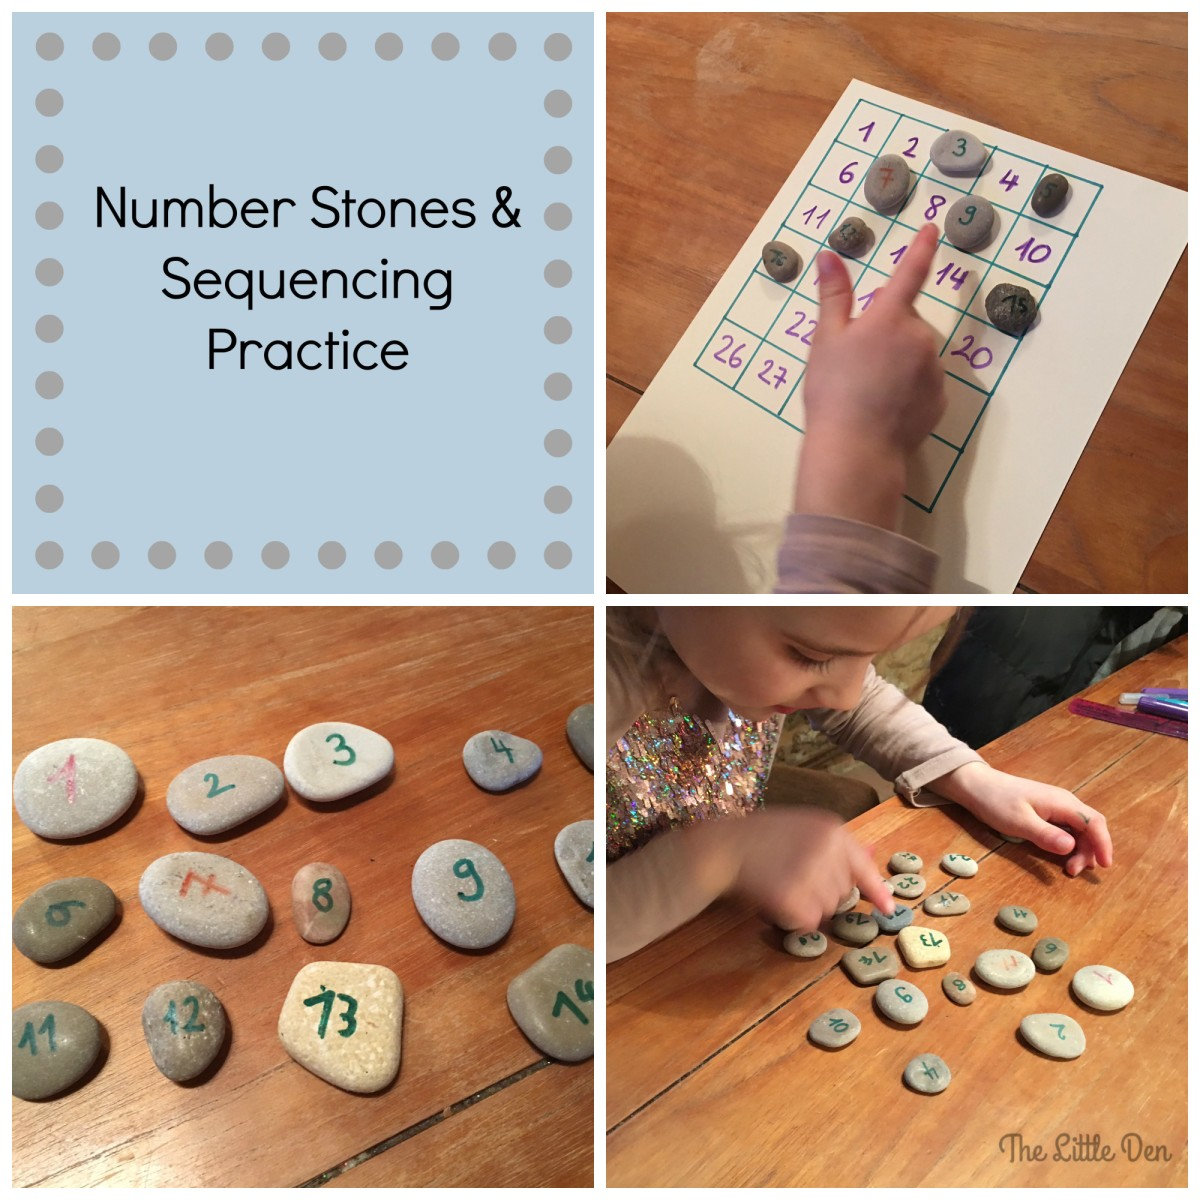 Number Stones and Sequencing Practice